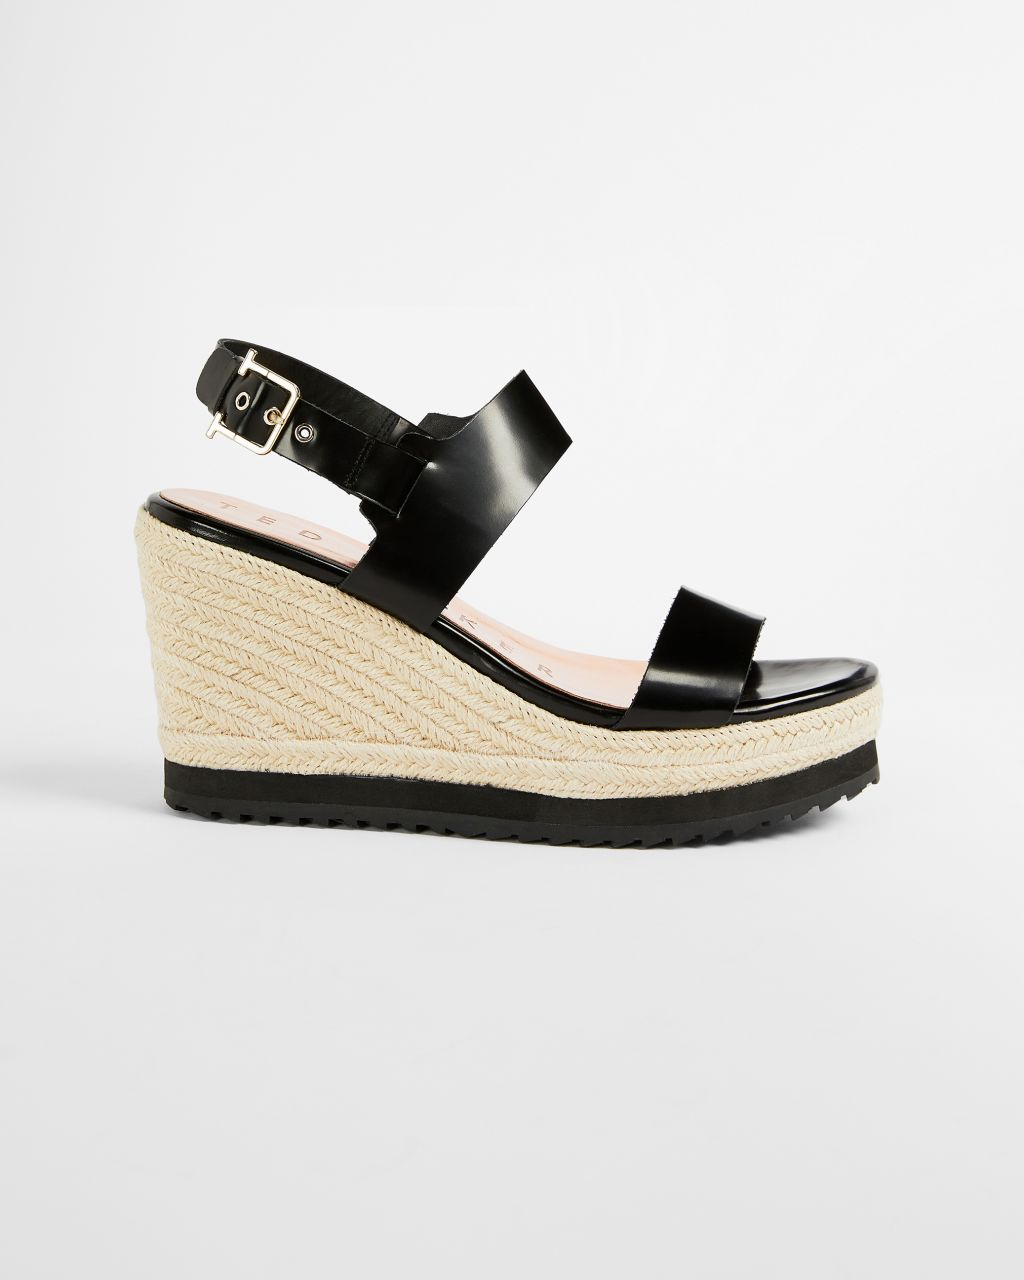 TED BAKER Sports Luxe Sspadrille Sandal | TED BAKER SALE